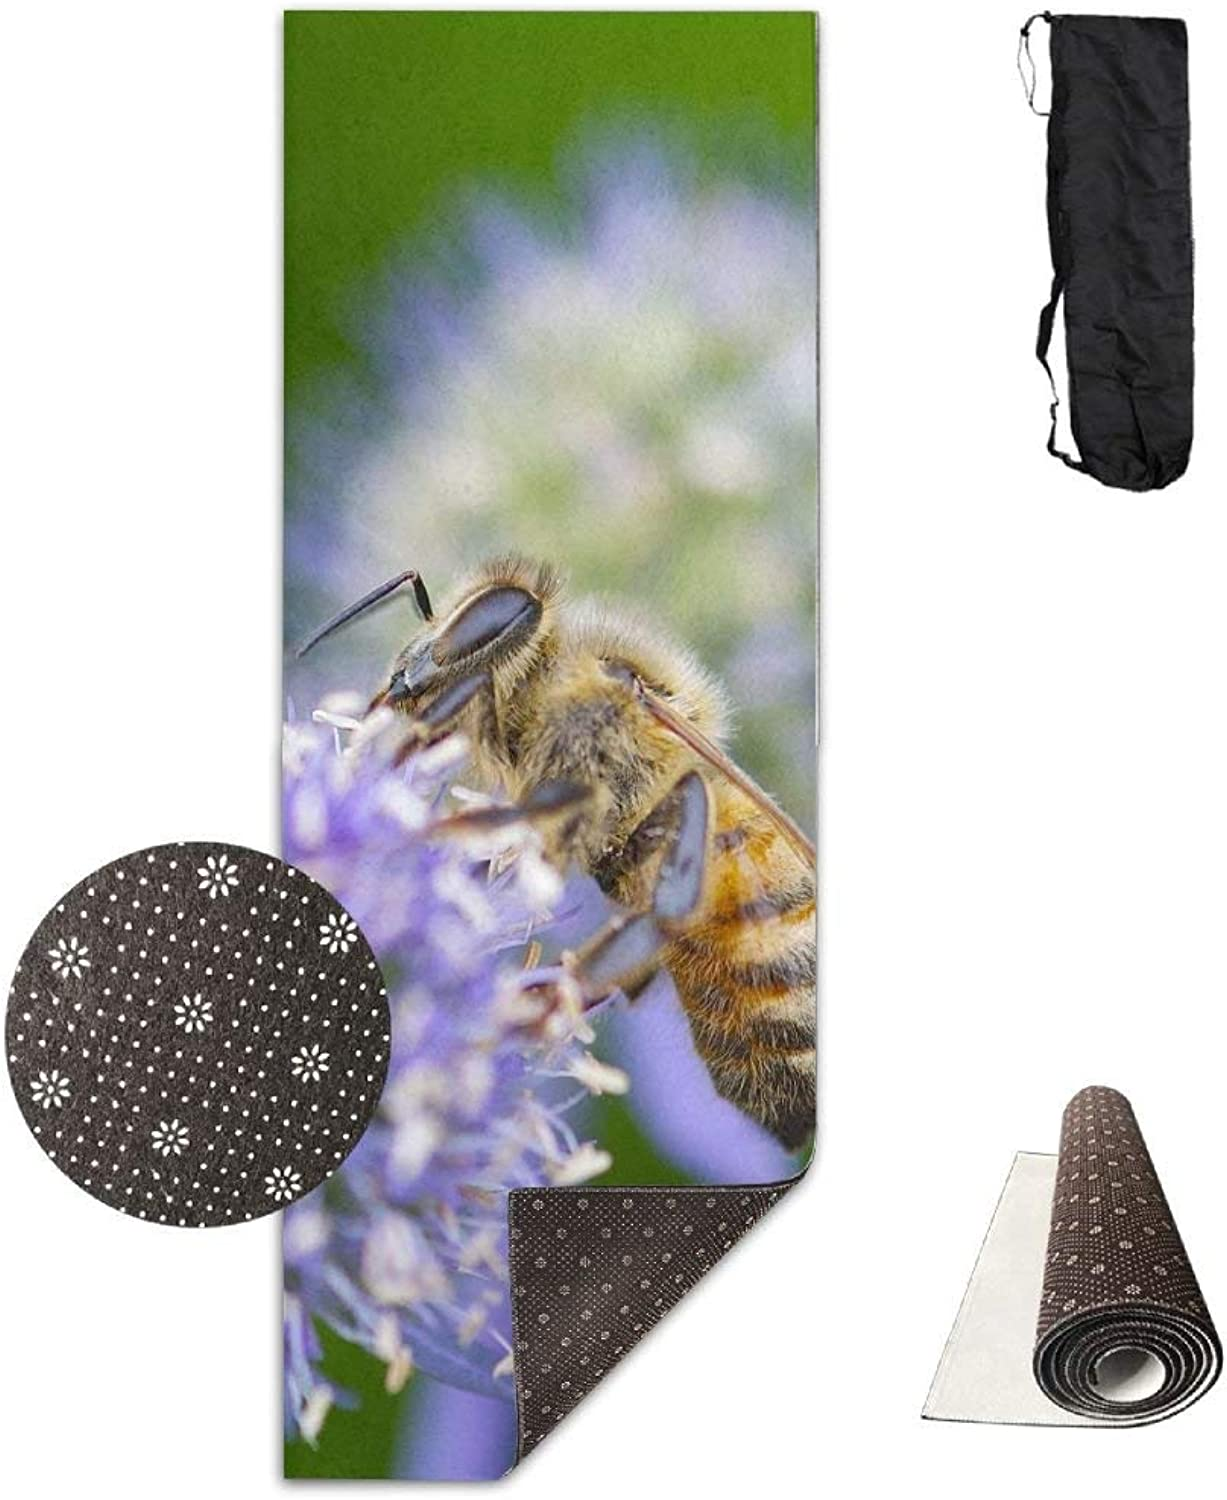 Honeybee Purple Flower Yoga Mat  Advanced Yoga Mat  NonSlip Lining  Easy to Clean  LatexFree  Lightweight and Durable  Long 180 Width 61cm